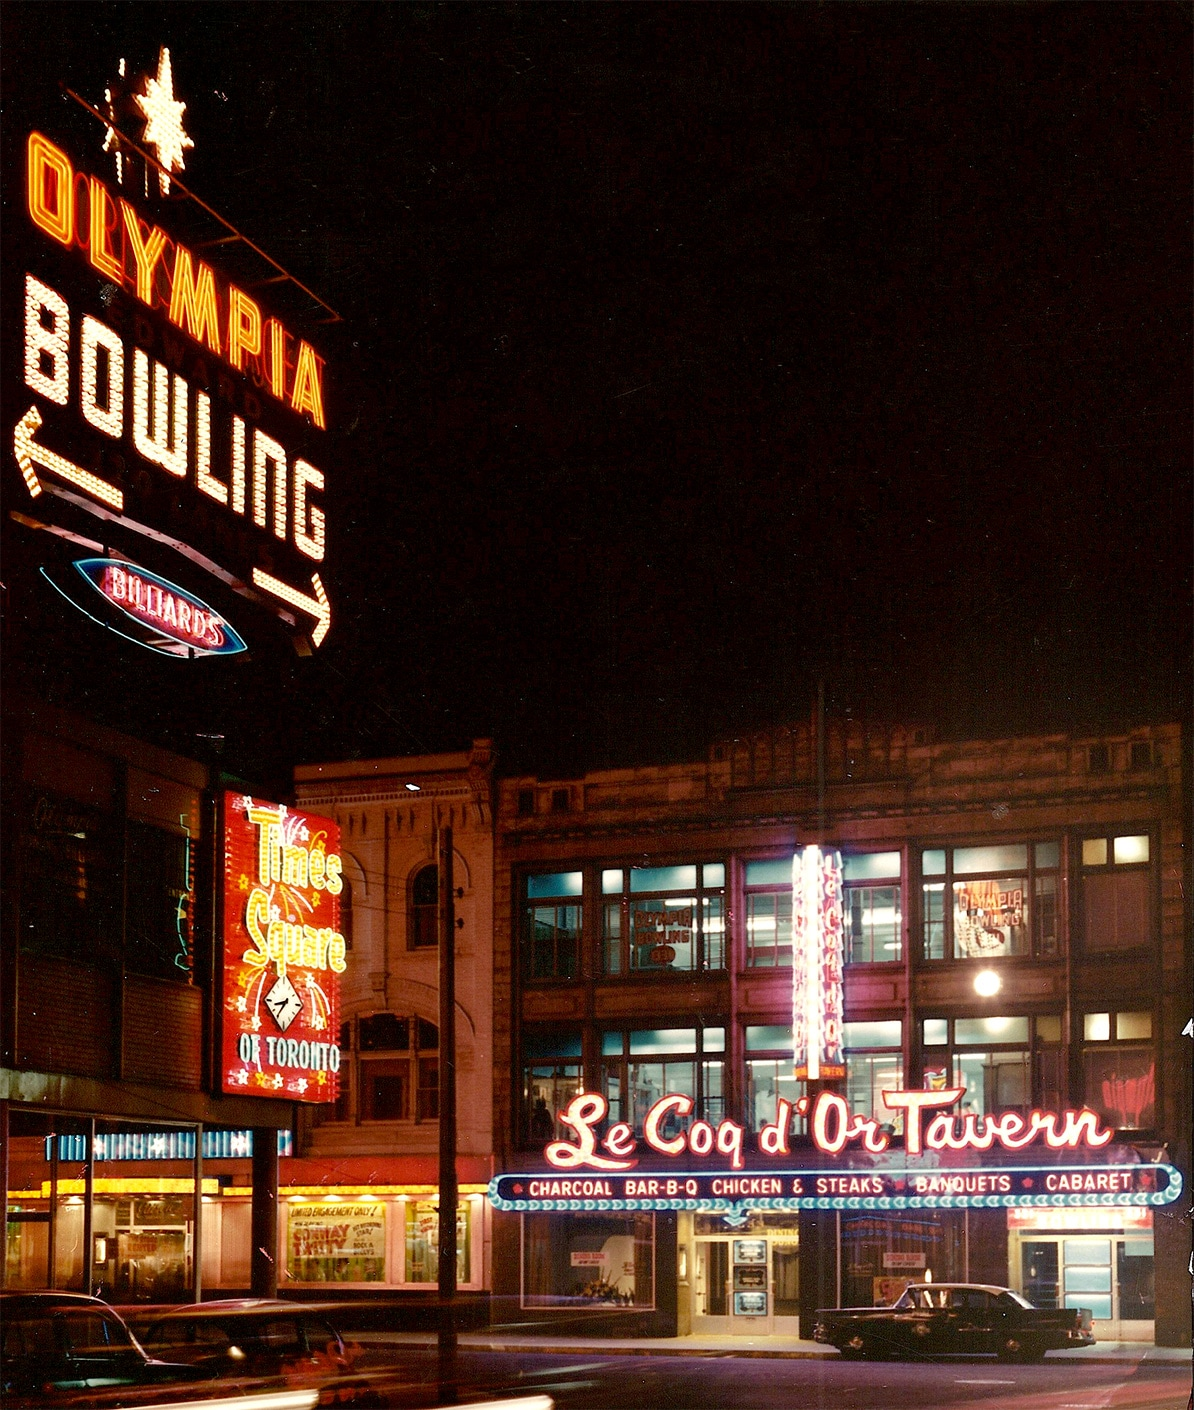 """A colour photograph showing the exterior of a building on which """"Le Coq d'Or Tavern"""" is lit in bright red and white lights outside the first floor. A smaller neon sign on the opposite side of the road advertises """"Times Square of Toronto"""". Above it, a large neon sign reads """"Olympia Bowling"""" with arrows pointing in either direction."""